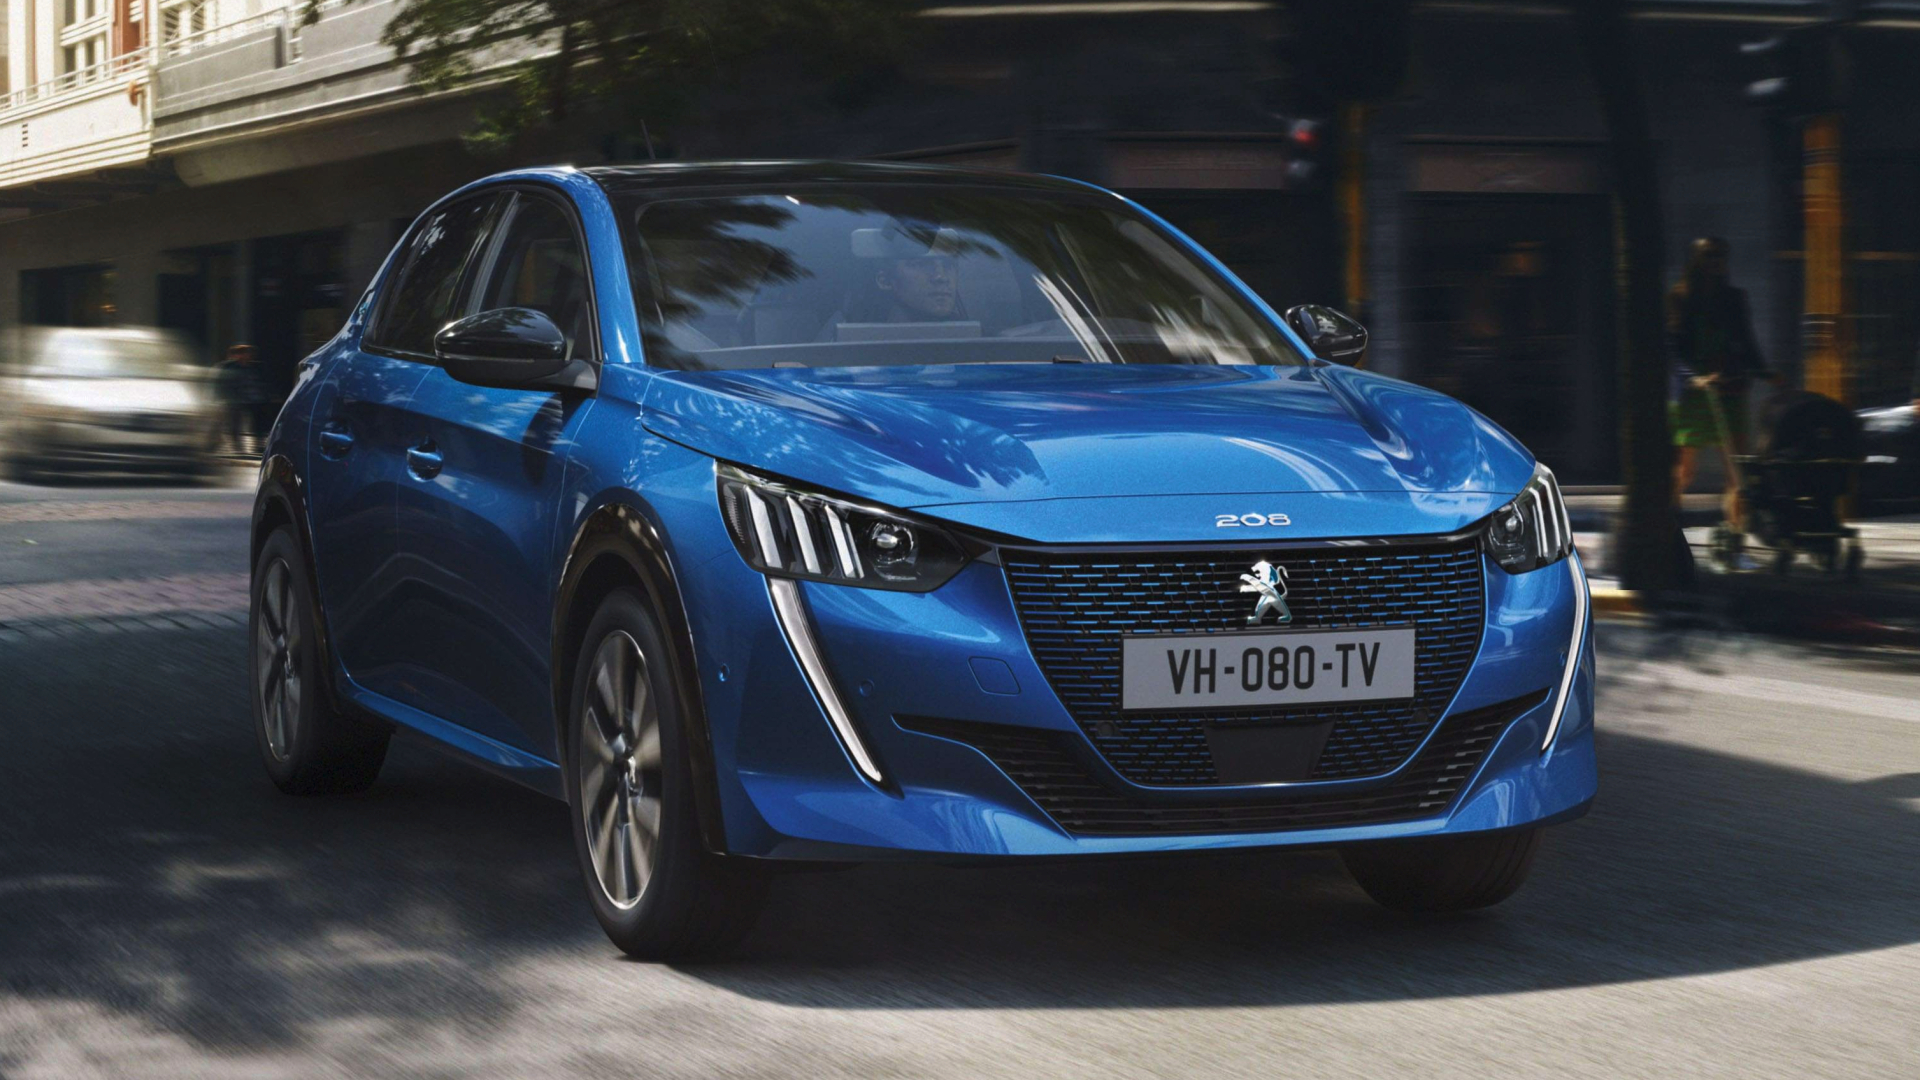 2019 Peugeot 208 debuts with chic, stylish looks – Redline